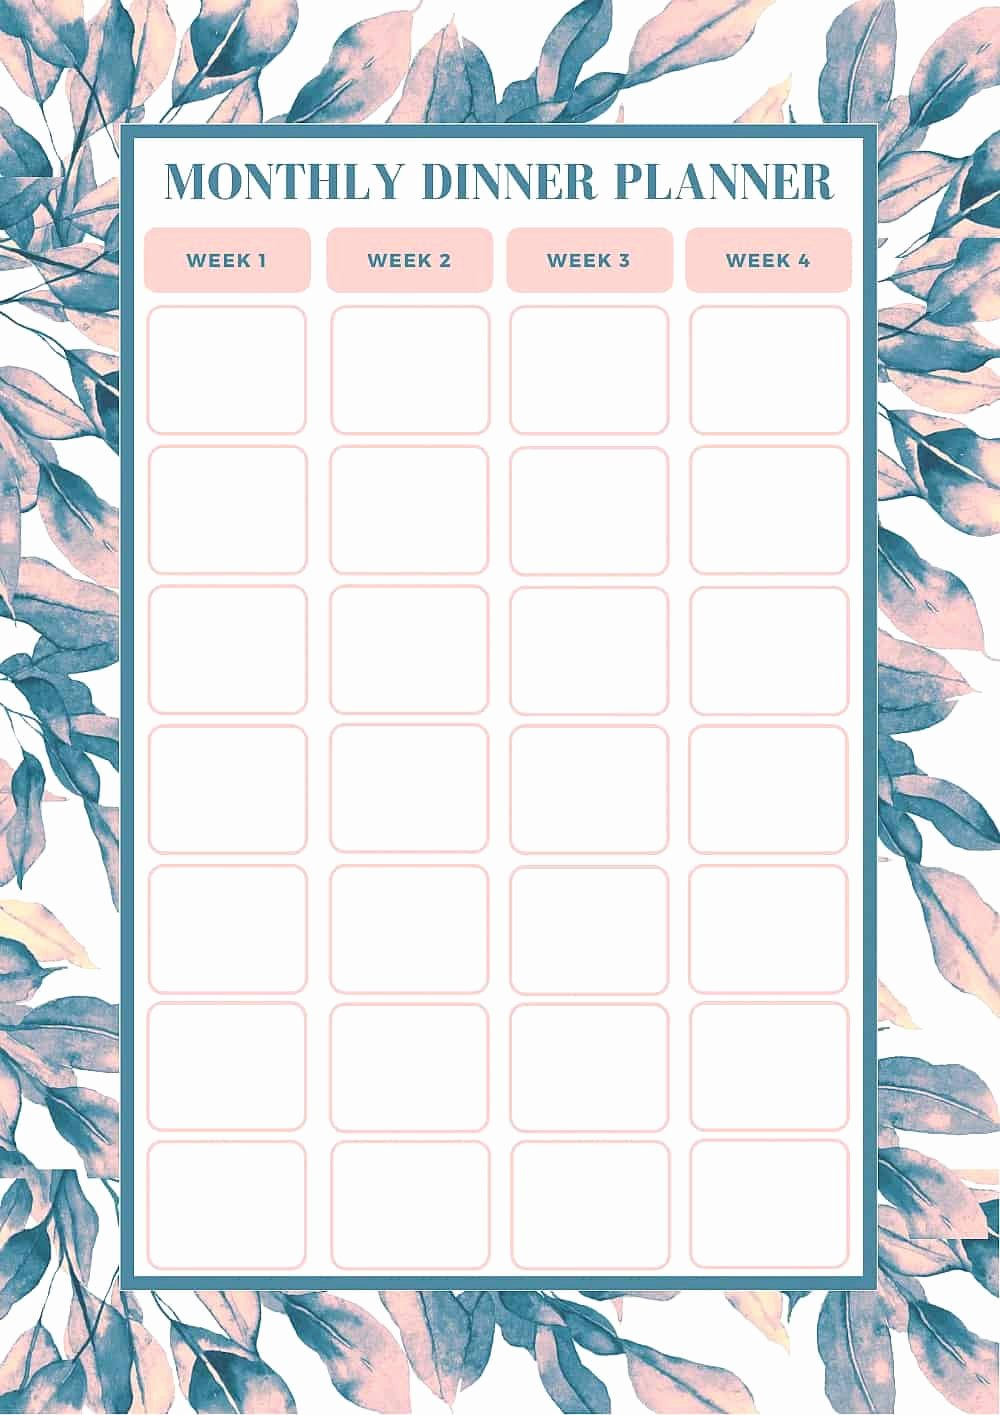 Monthly Meal Planner Template Elegant Free Monthly Meal Planning Template Bake Play Smile